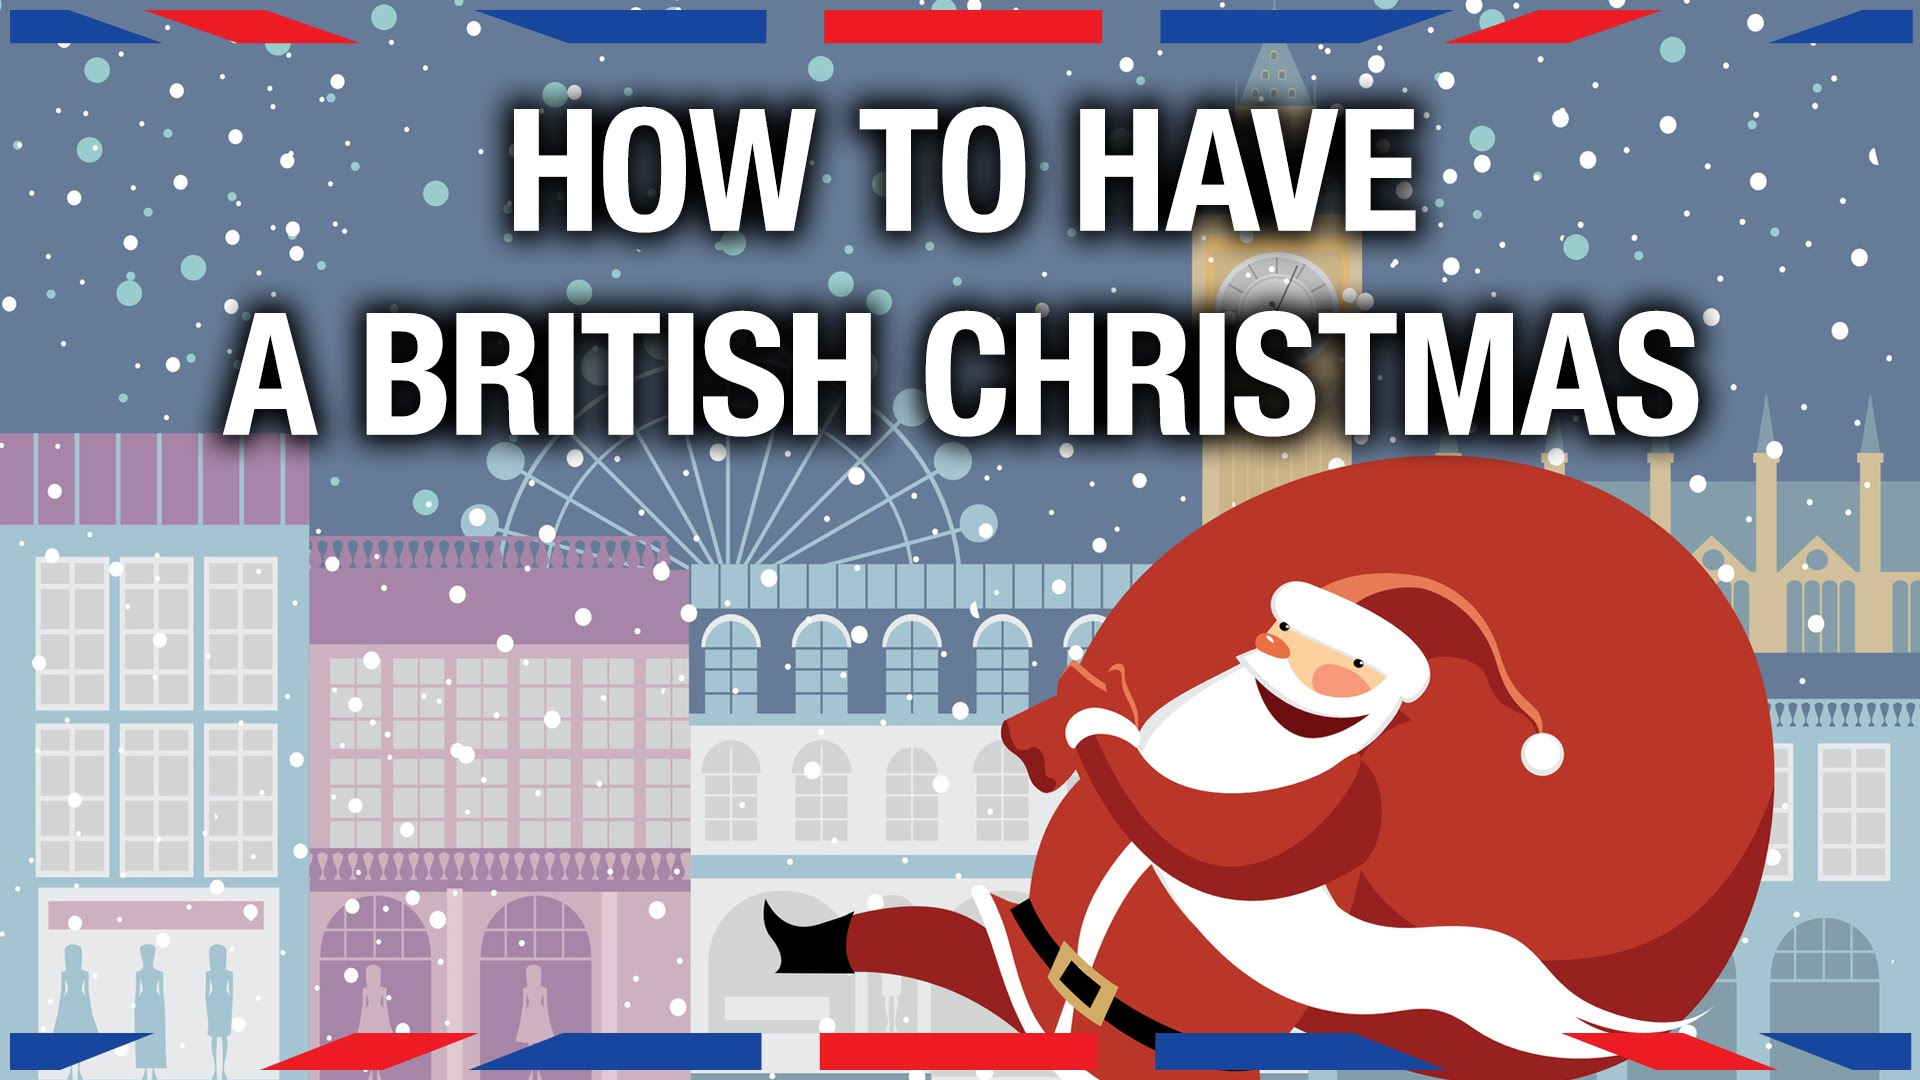 「一起過個英式聖誕!」- How to Have a British Christmas